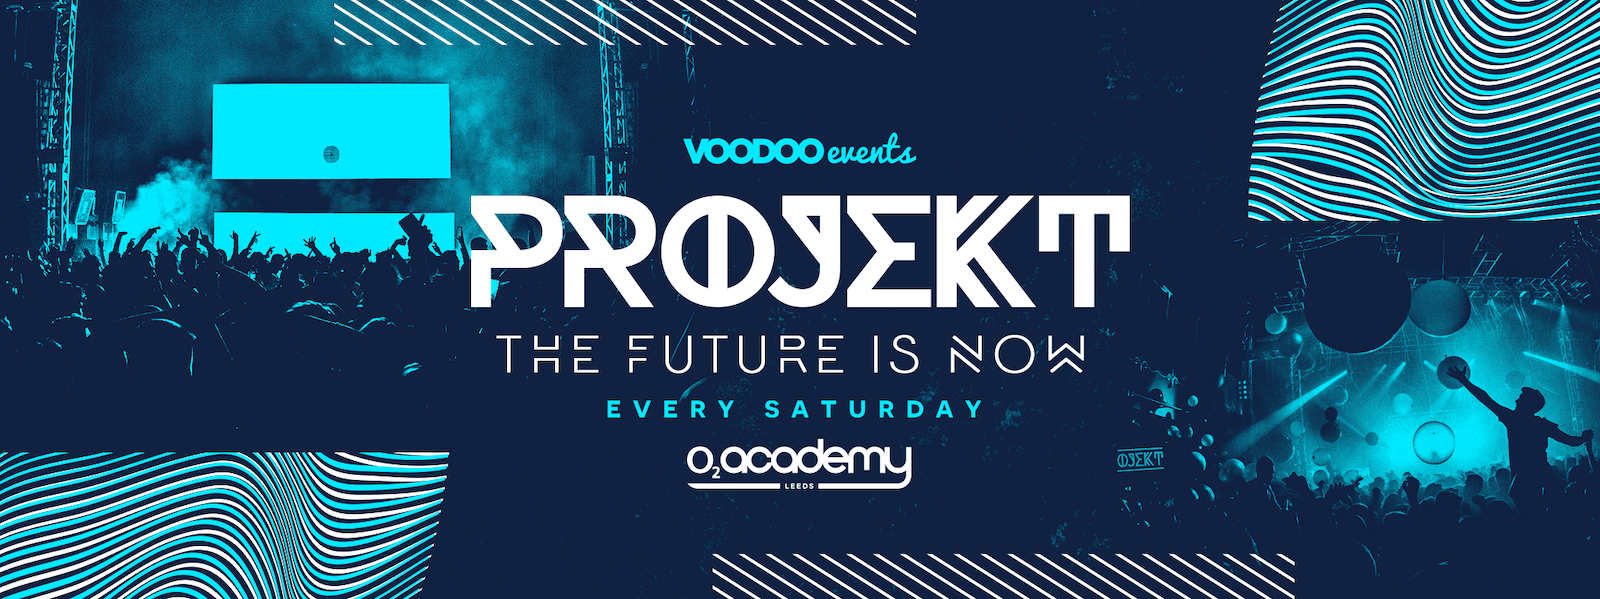 Projekt  at the O2 Academy- Freshers 25th September